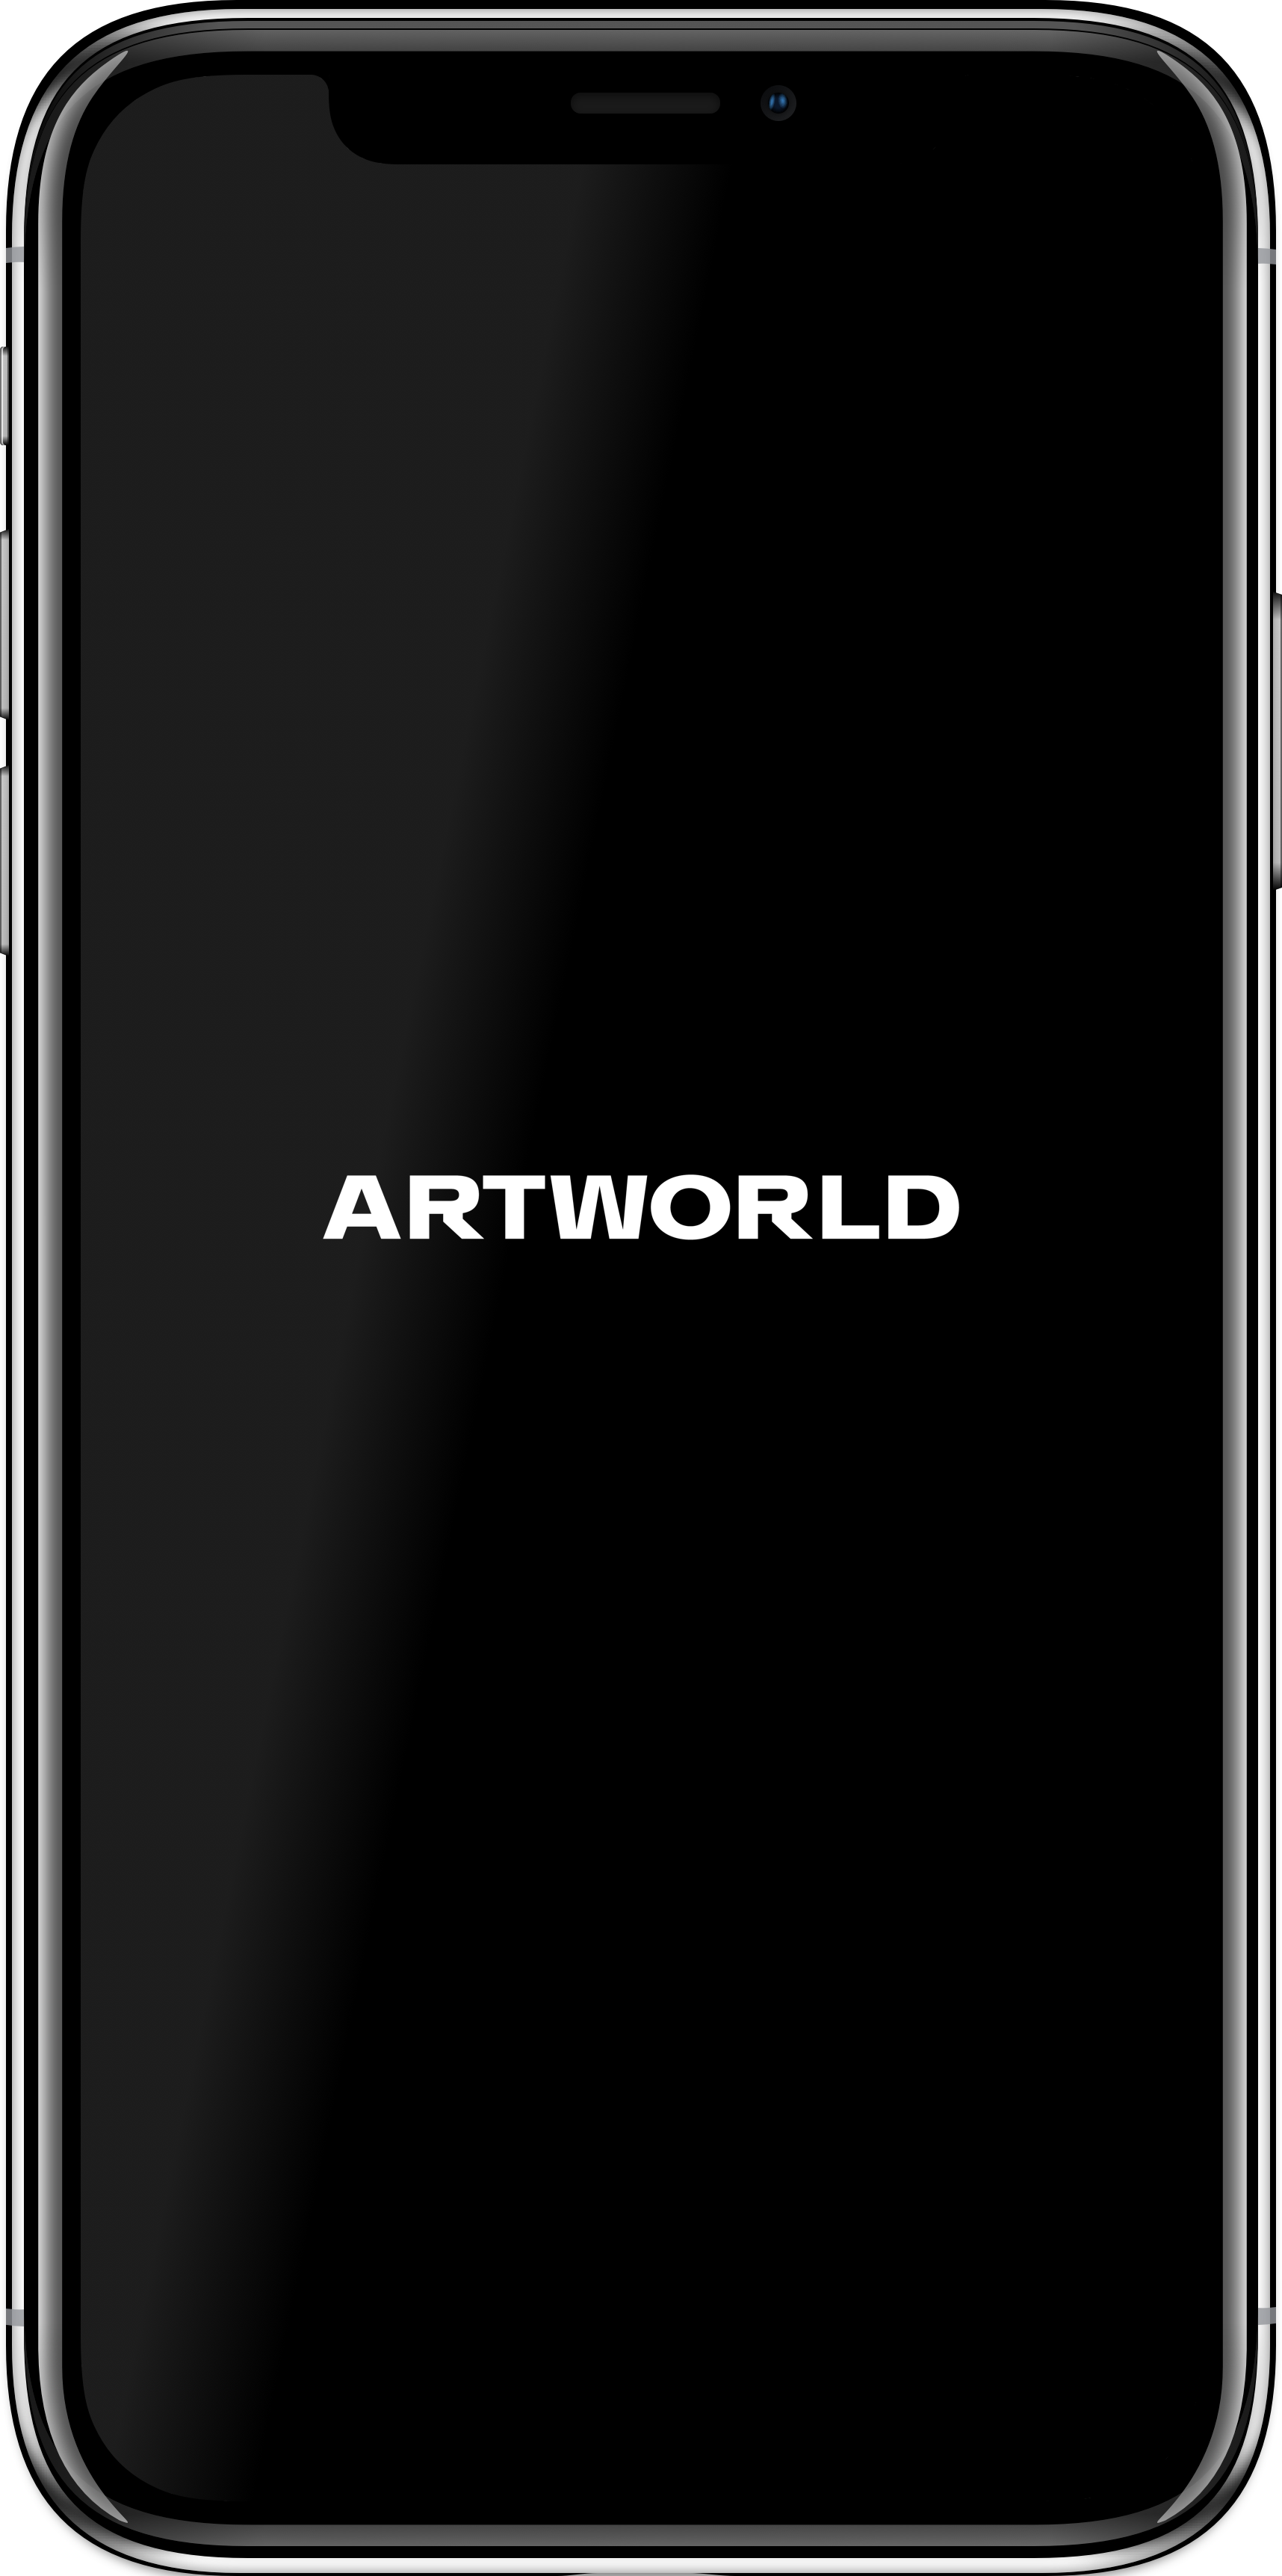 Artworld App splash page on an iPhone